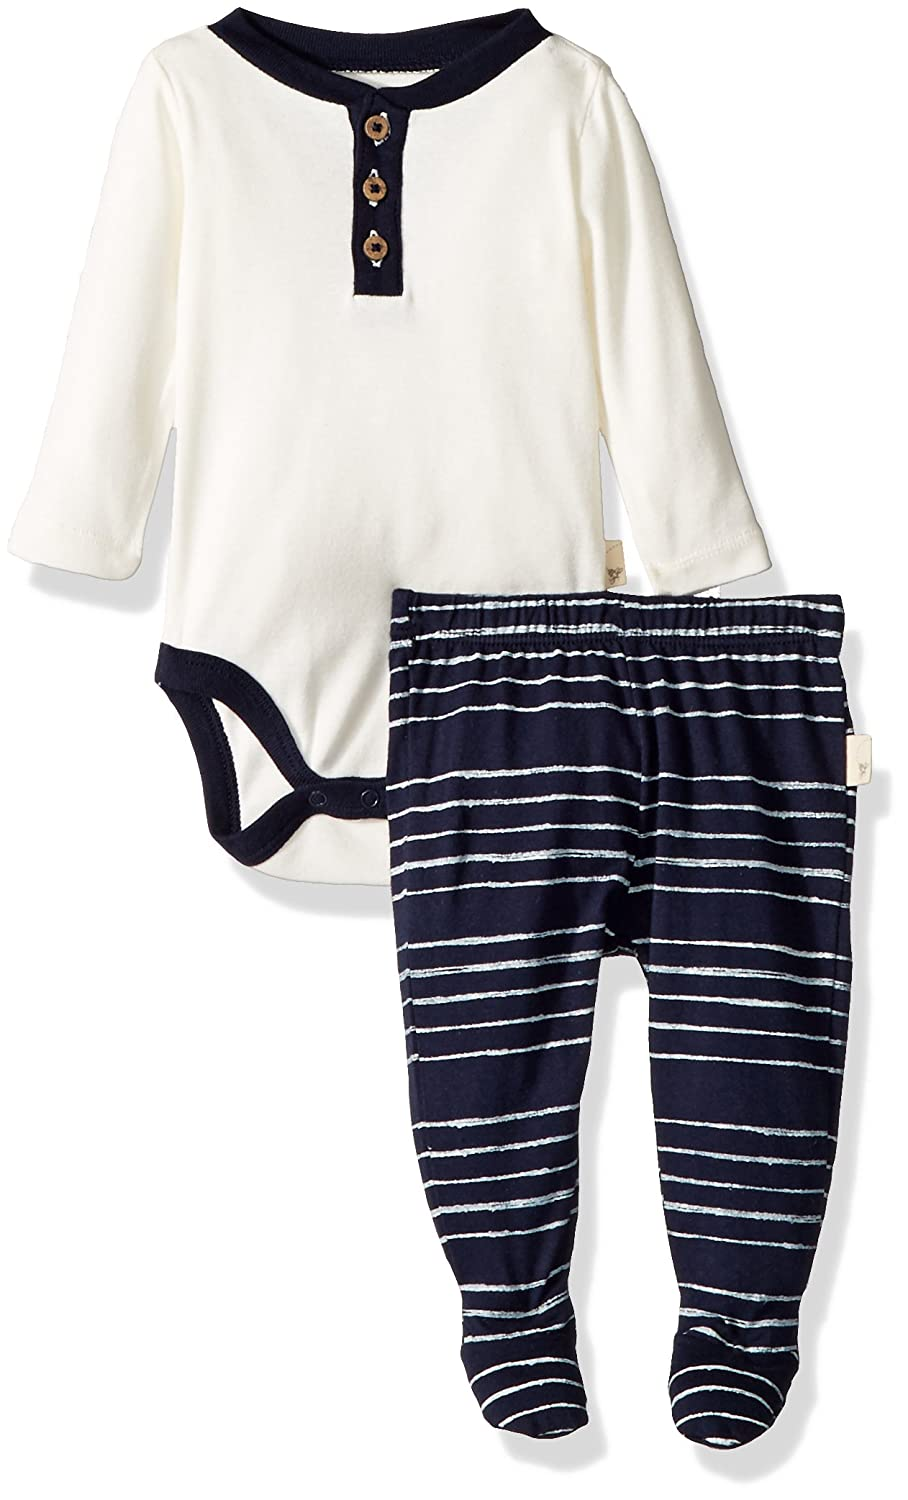 f7853ee18 Burt's Bees Baby Baby Boys Painted Melody Bodysuit and Footed Pant Set,  Midnight, 3-6 Months: Amazon.com.au: Fashion